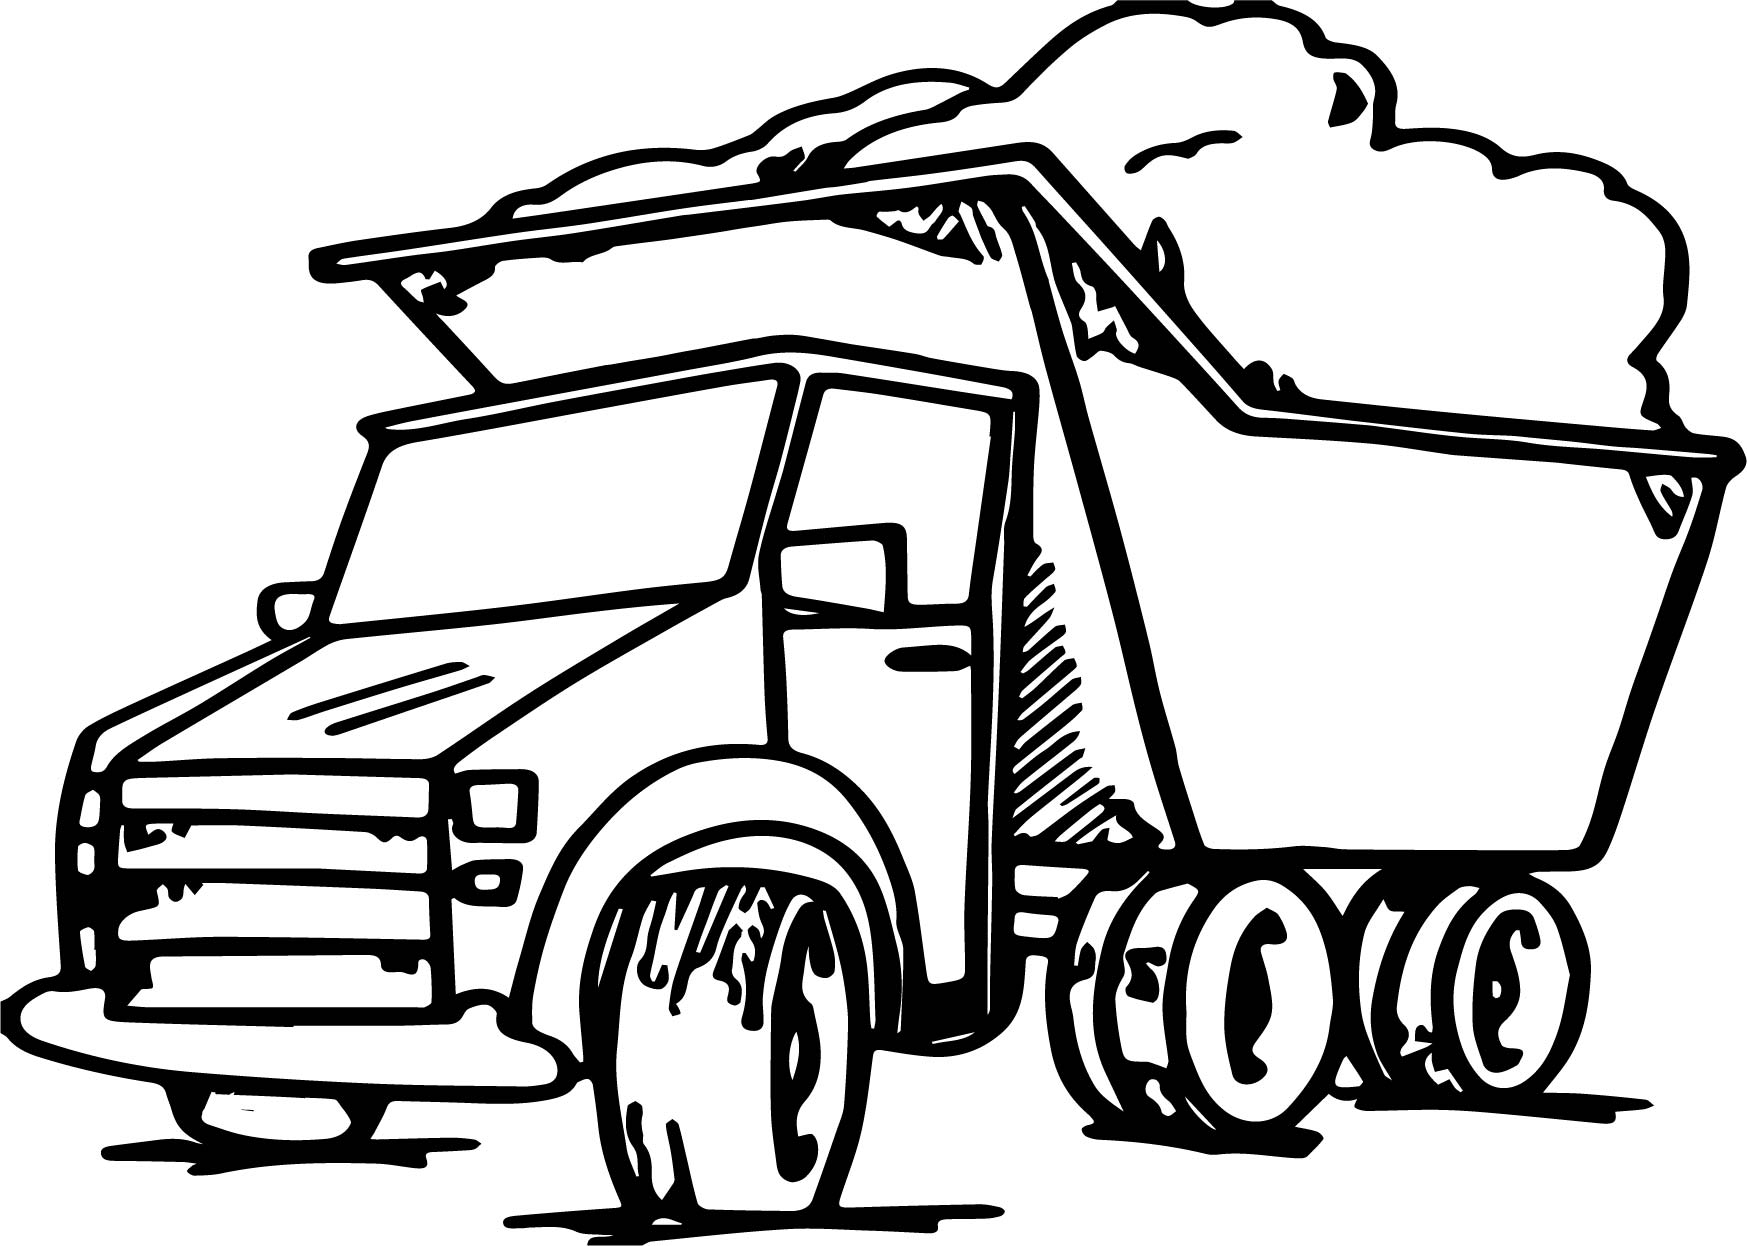 Garbage truck coloring book - Garbage Truck Coloring Page